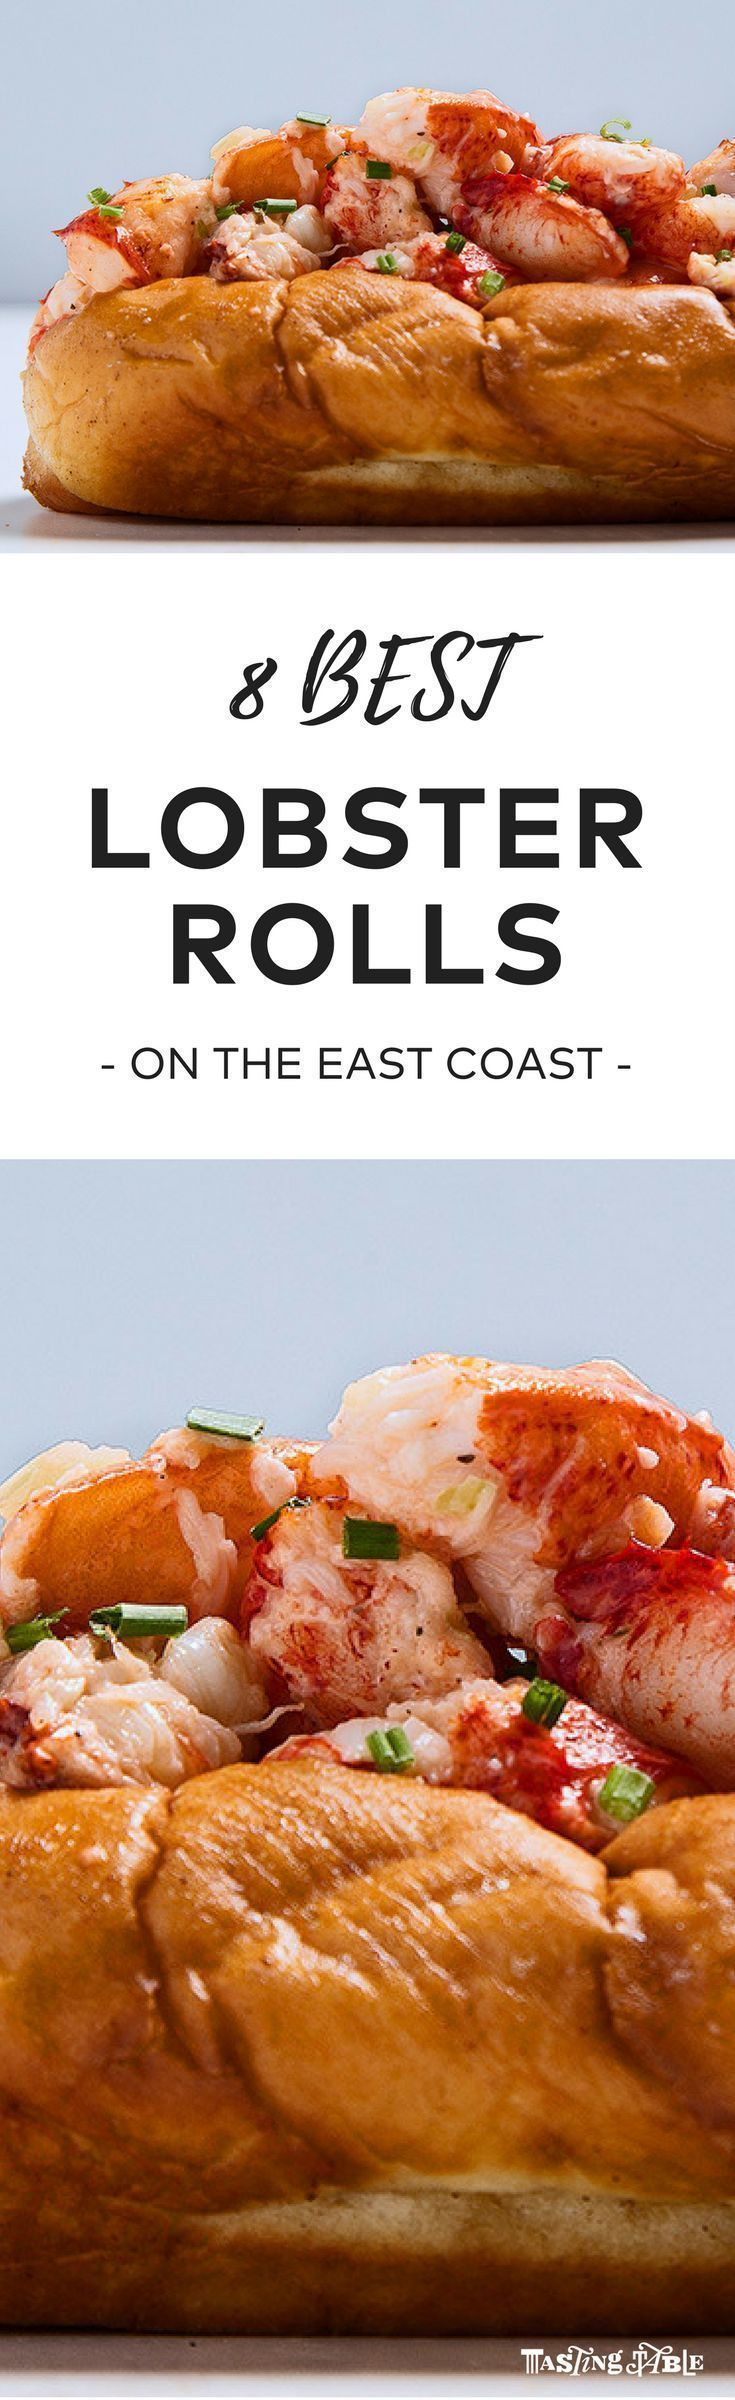 Celebrate summer with an East Coast lobster roll tour